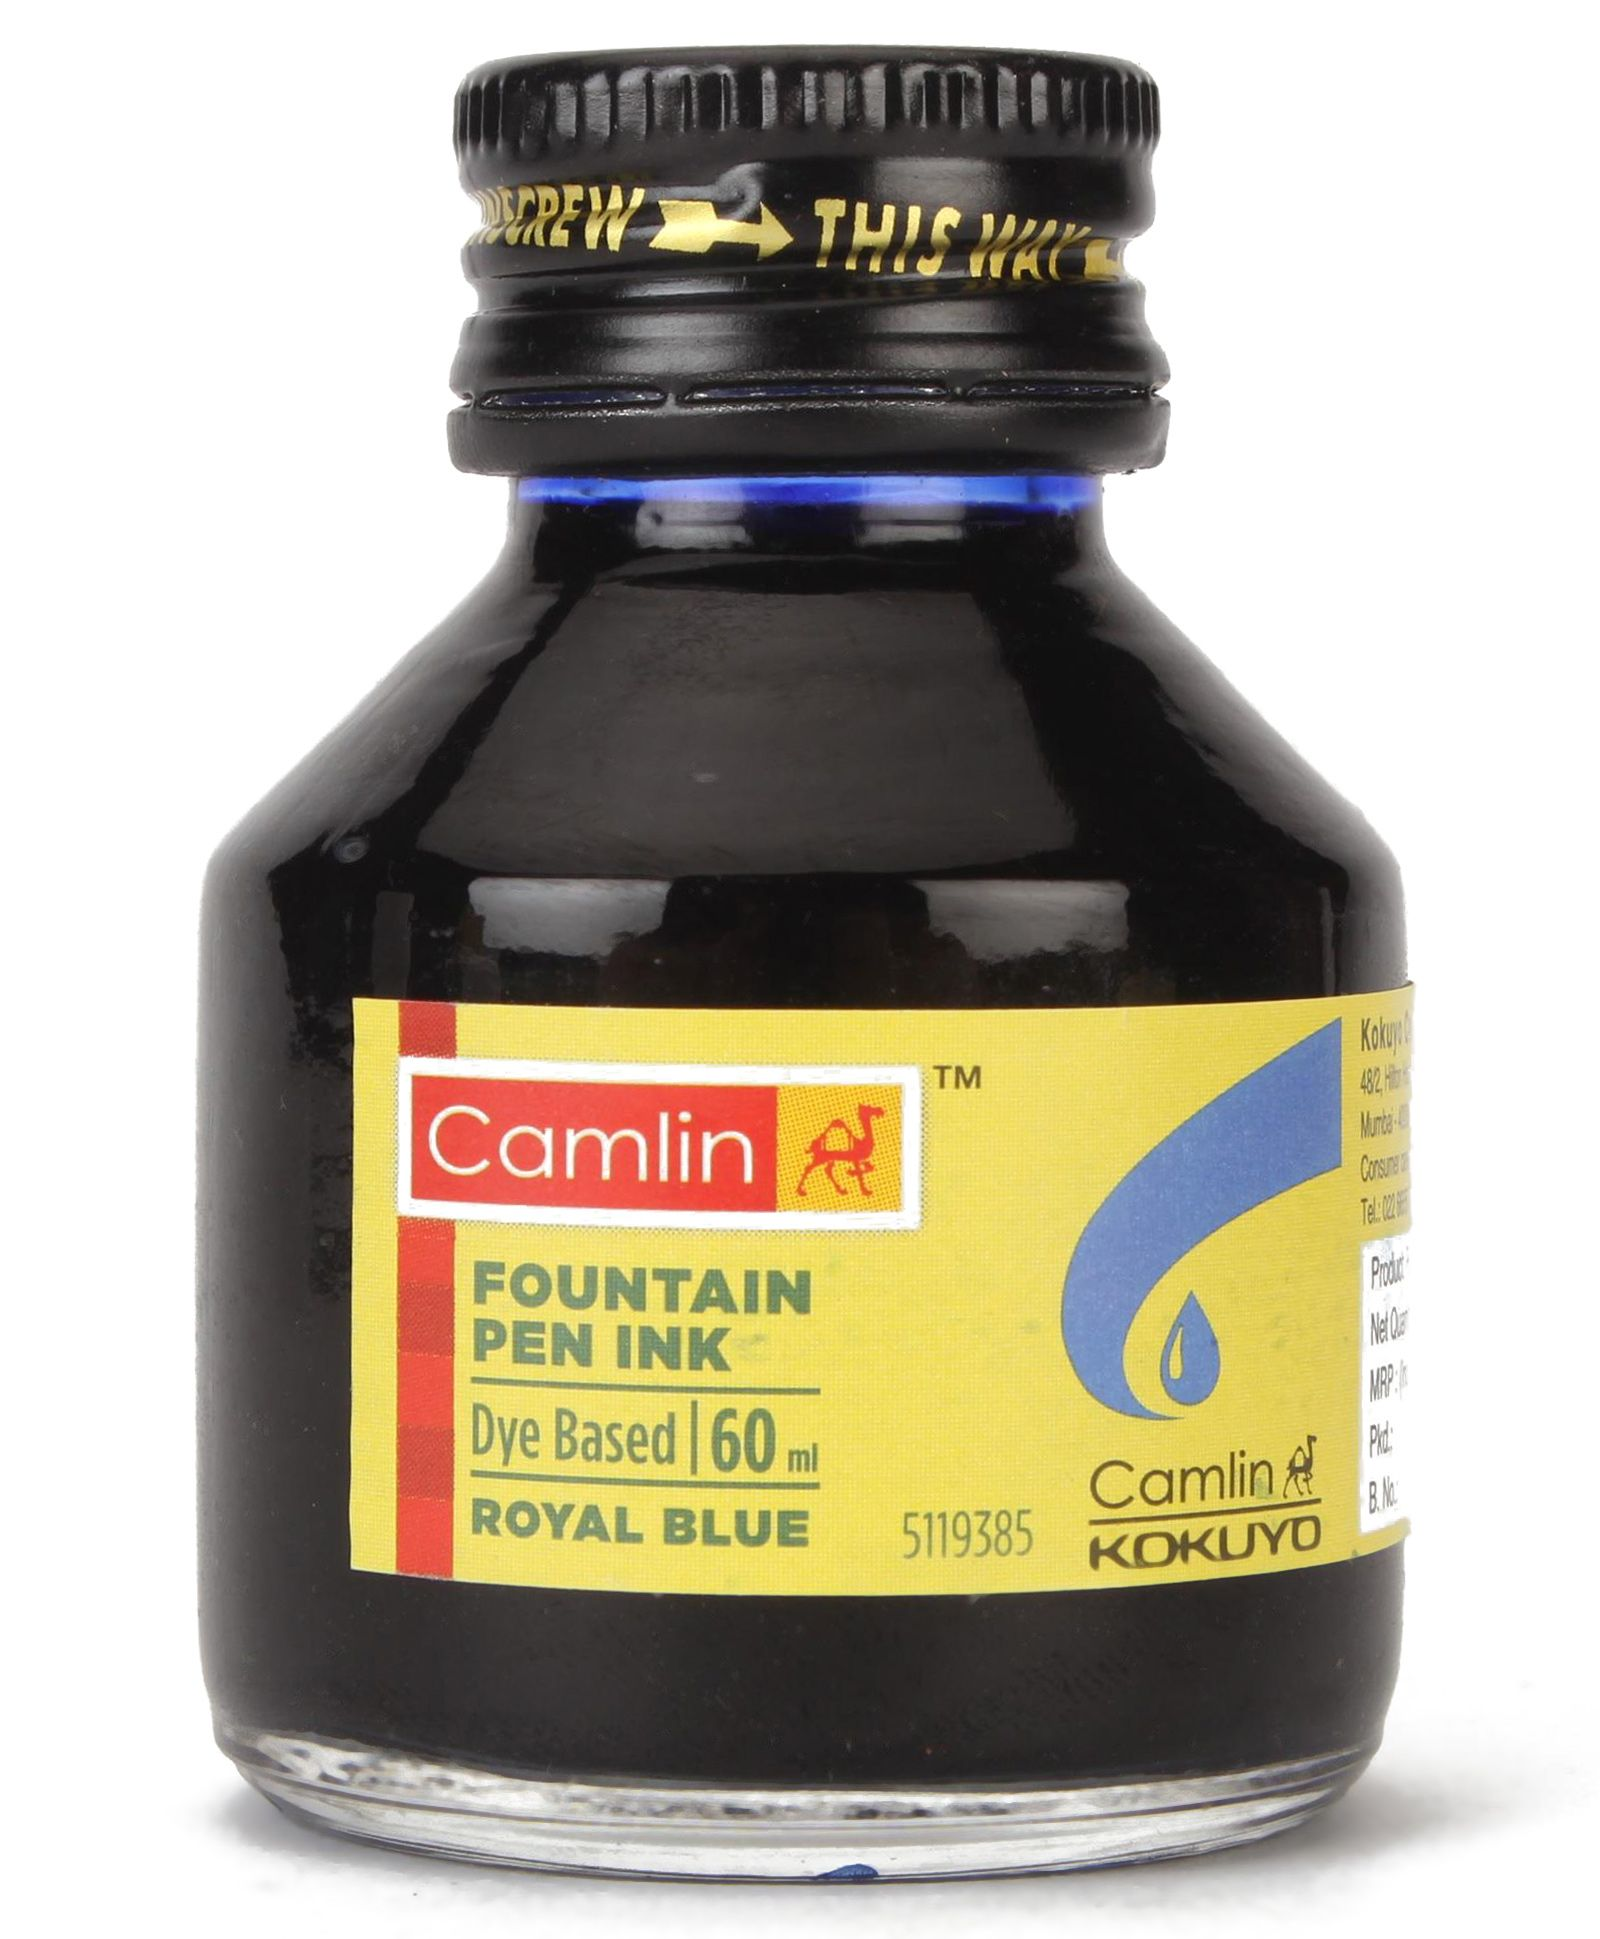 b45f9602f56 Camlin Fountain Pen Ink Royal Blue 60 ml Online in India